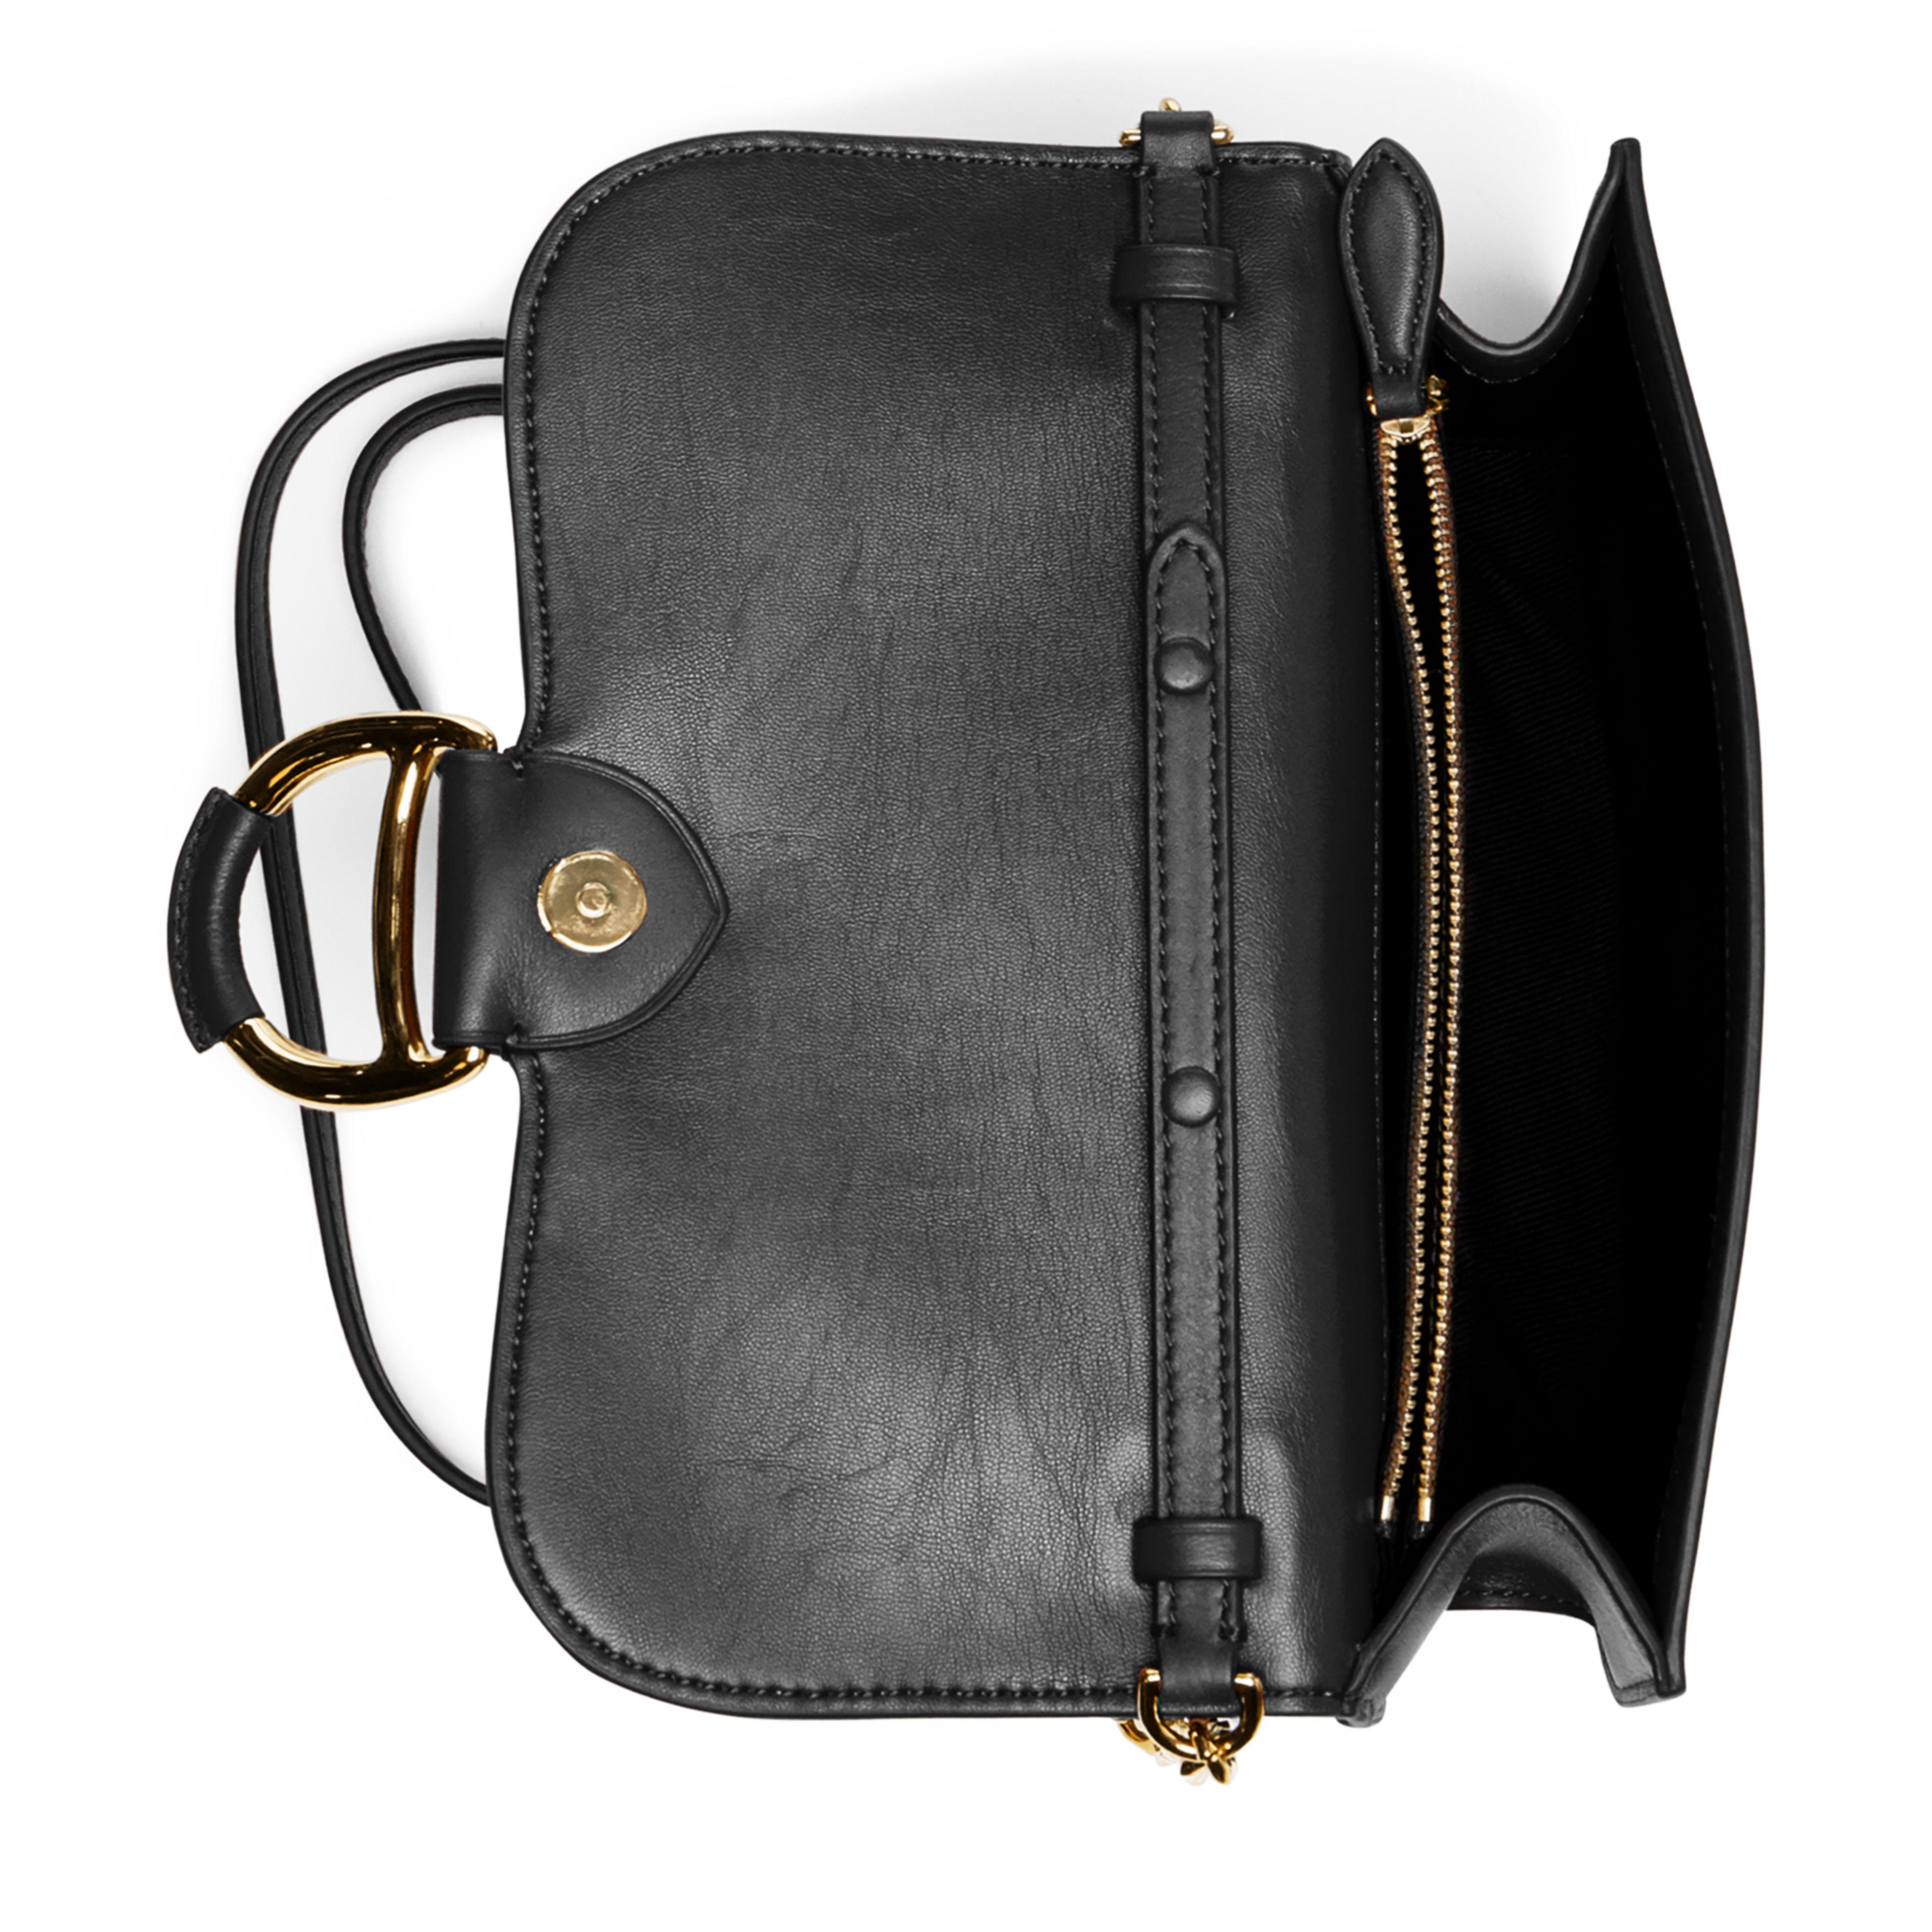 e5916605dc06 ... good lyst polo ralph lauren leather maddie crossbody bag in black b4c62  c88c6